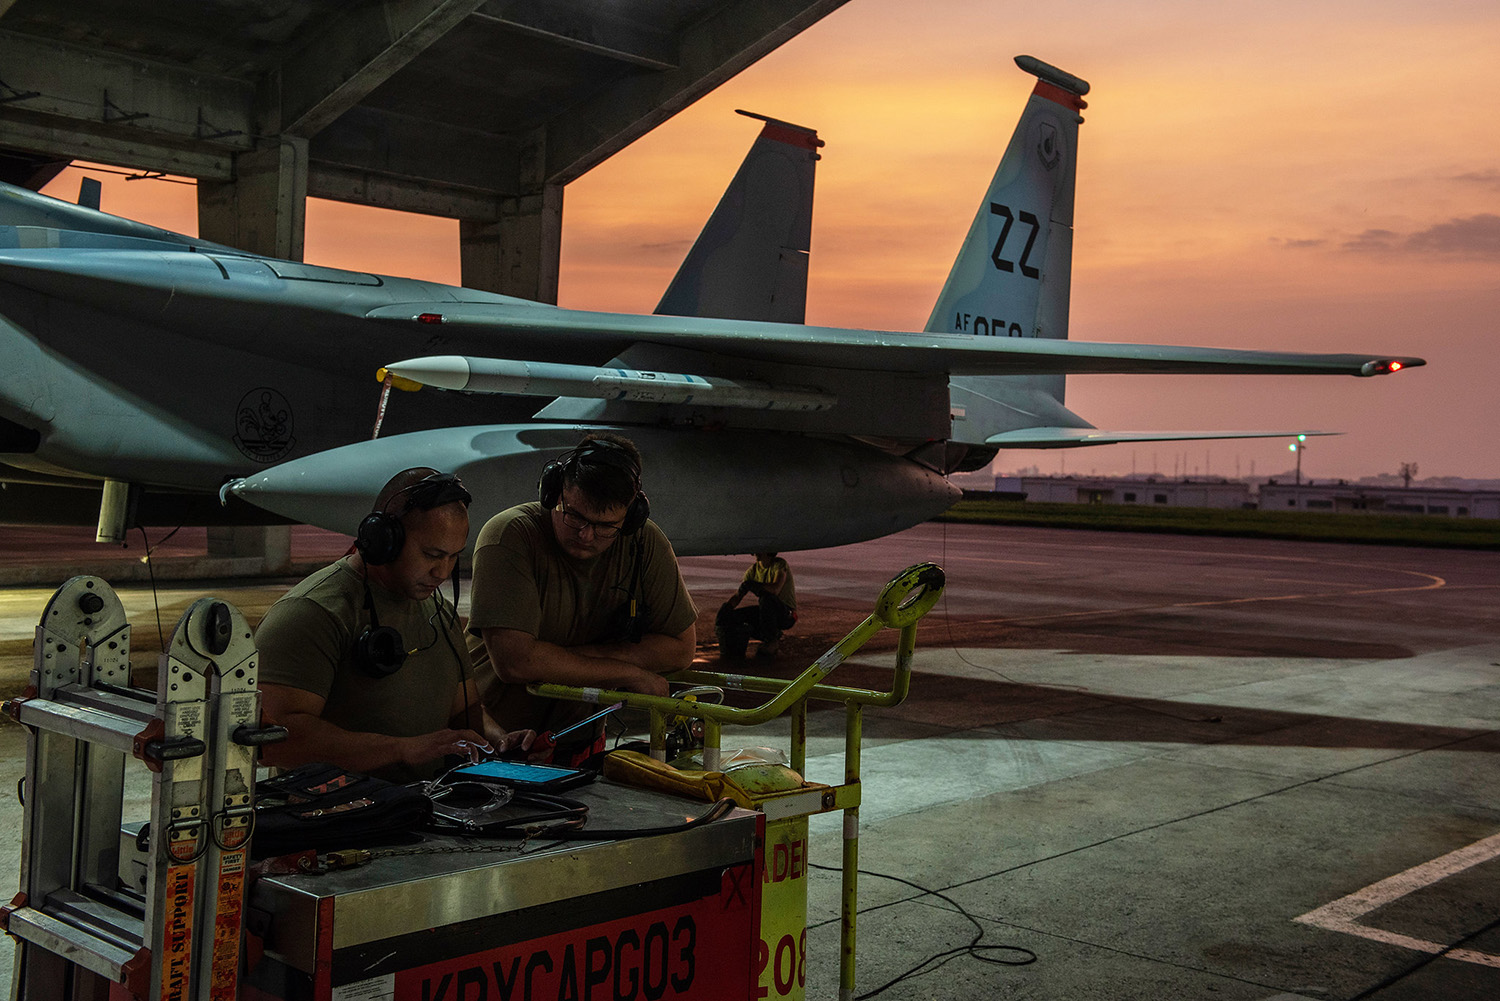 Crew chiefs assigned to the 18th Aircraft Maintenance Squadron discuss the preparation requirements for a 67th Fighter Squadron F-15C Eagle before a mission at Kadena Air Base, Japan, Sept. 16, 2019. (Tech. Sgt. Matthew B. Fredericks/Air Force)